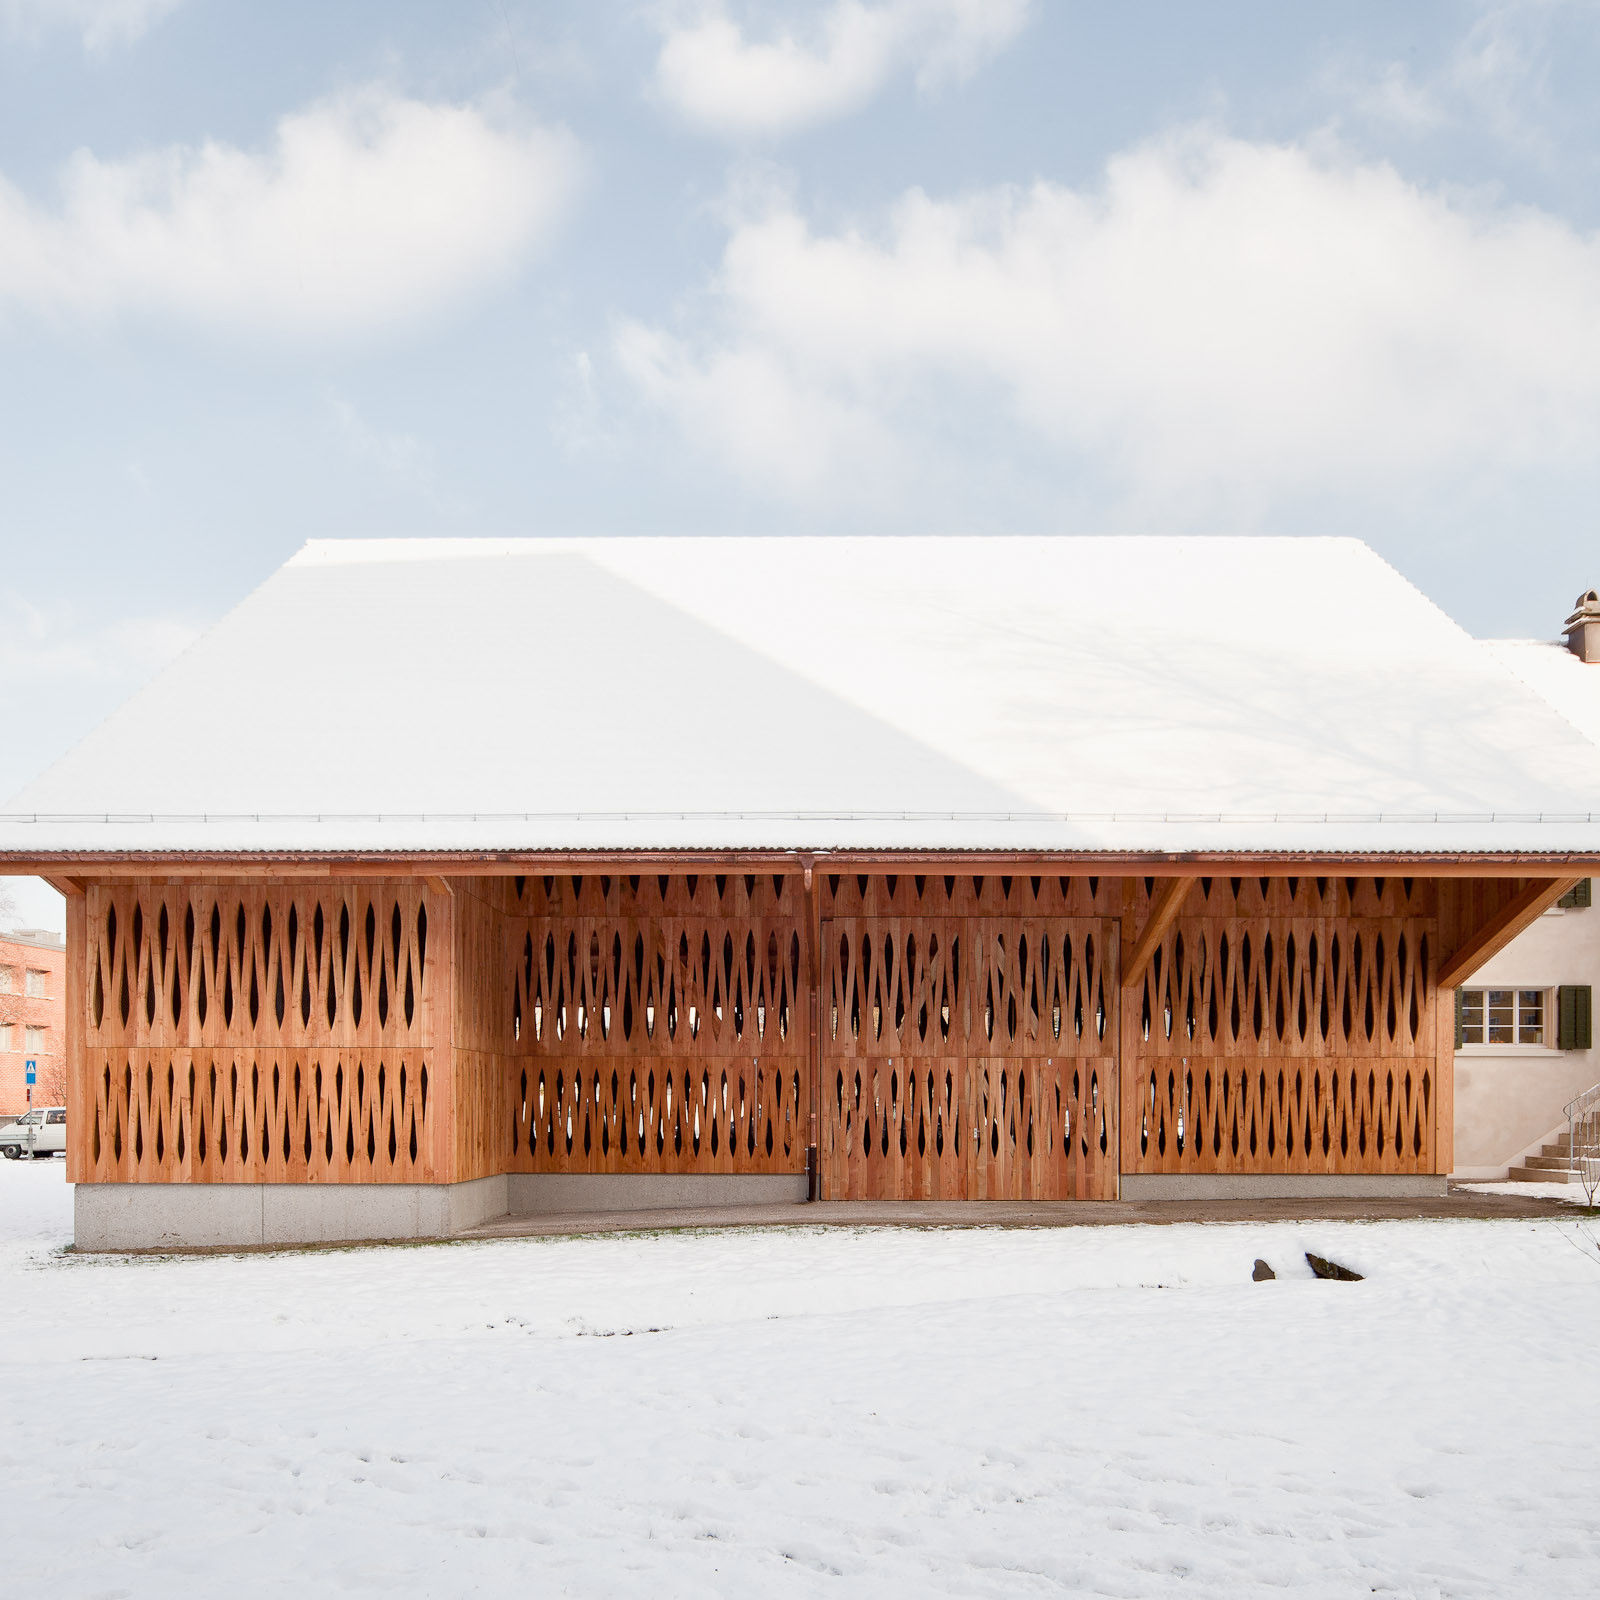 Dwelling House with Barn / Michael Meier Marius Hug Architekten, © Roman Keller